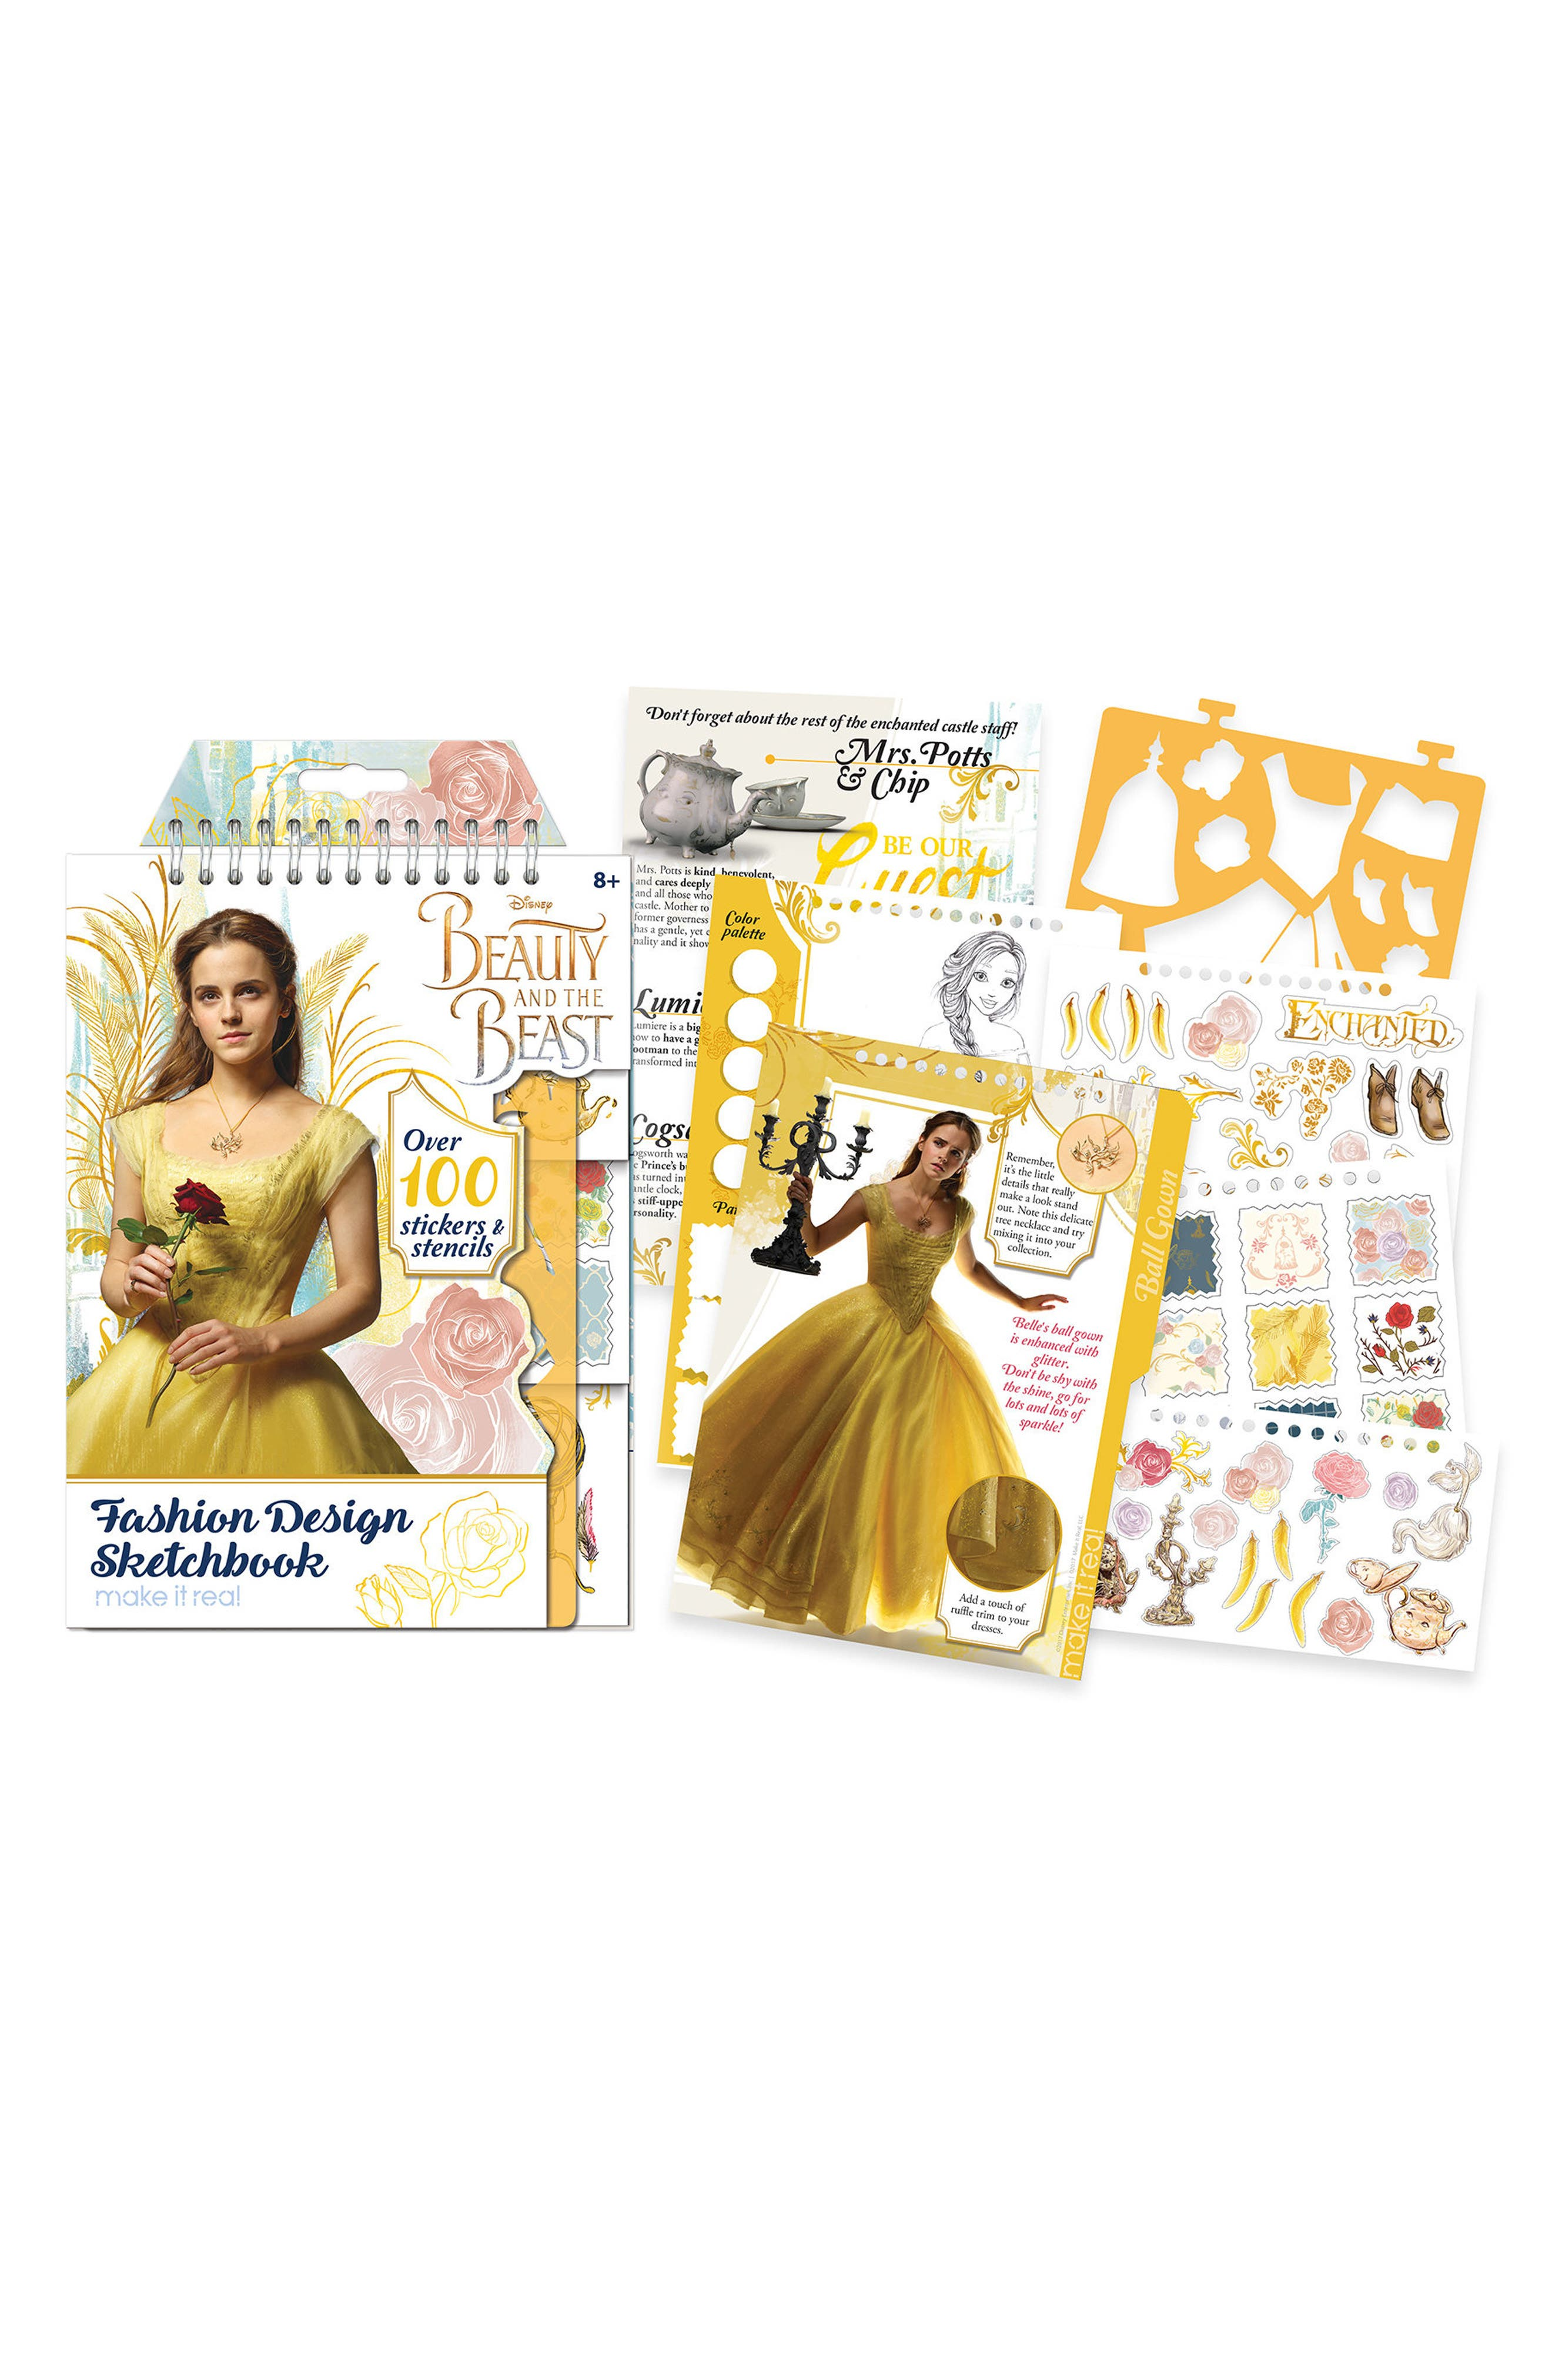 Make It Real Disney Beauty and the Beast Sketchbook